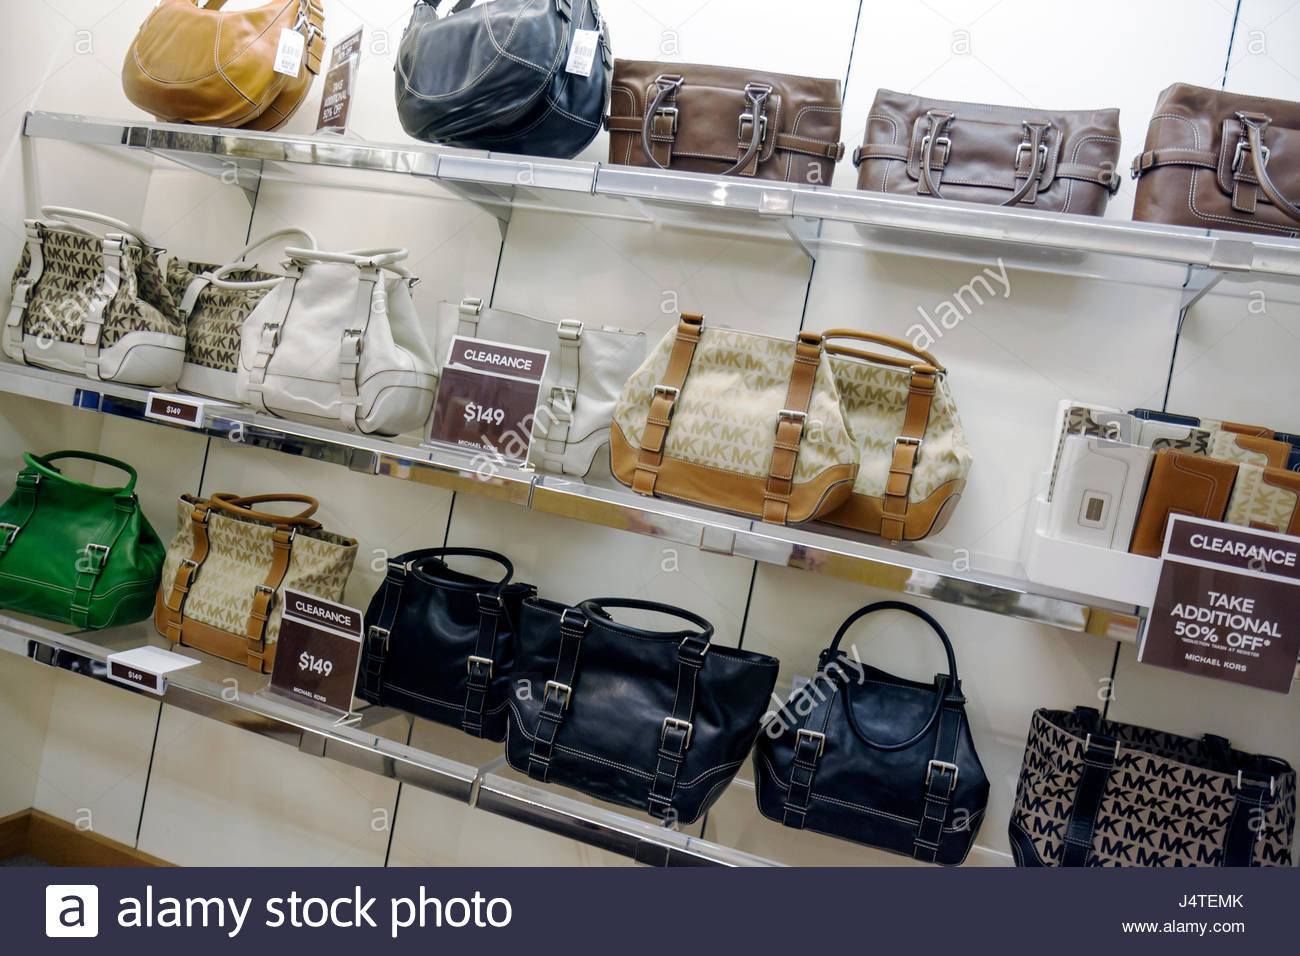 Naples Florida Estero Miromar Outlets retail mall brand designer discount  Michael Kors handbag clearance shopping half price 50% 21114612d1